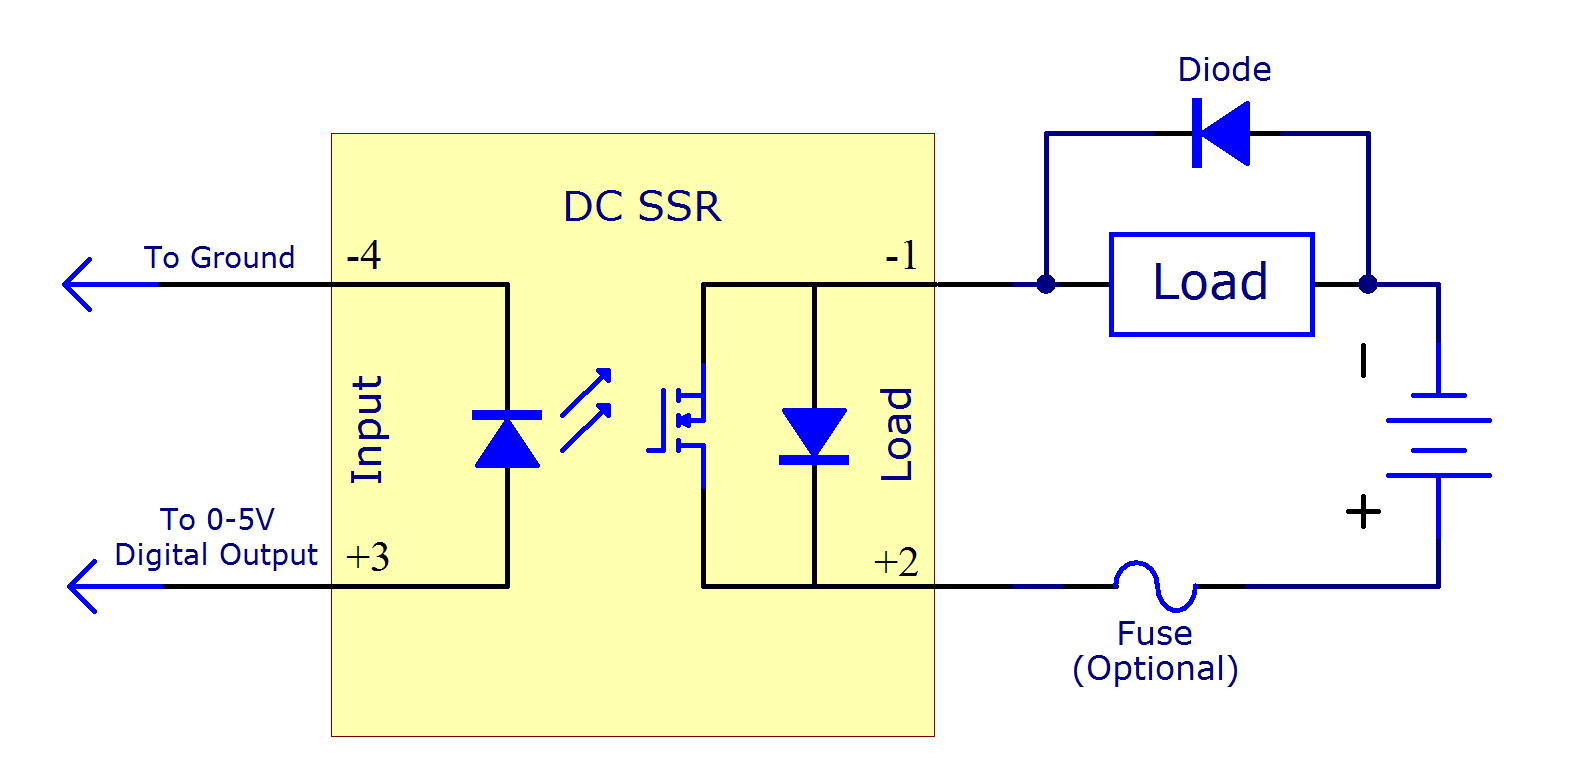 Solid State Relay Primer - Phidgets Support on resettable fuse, variable inductor schematic symbol, electronic component schematic symbol, optoelectronics schematic symbol, solar cell schematic symbol, screw schematic symbol, capacitor schematic symbol, surge arrestor, diac schematic symbol, potentiometer schematic symbol, pin schematic symbol, ferrite core schematic symbol, gas filled tube, heatsink schematic symbol, or gate schematic symbol, electronic color code, load cell schematic symbol, surge suppressor schematic symbol, thermistor schematic symbol, electronic component, reactor schematic symbol, cable schematic symbol, crystal oscillator, thermocouple schematic symbol, inrush current limiter, shield schematic symbol, washer schematic symbol,